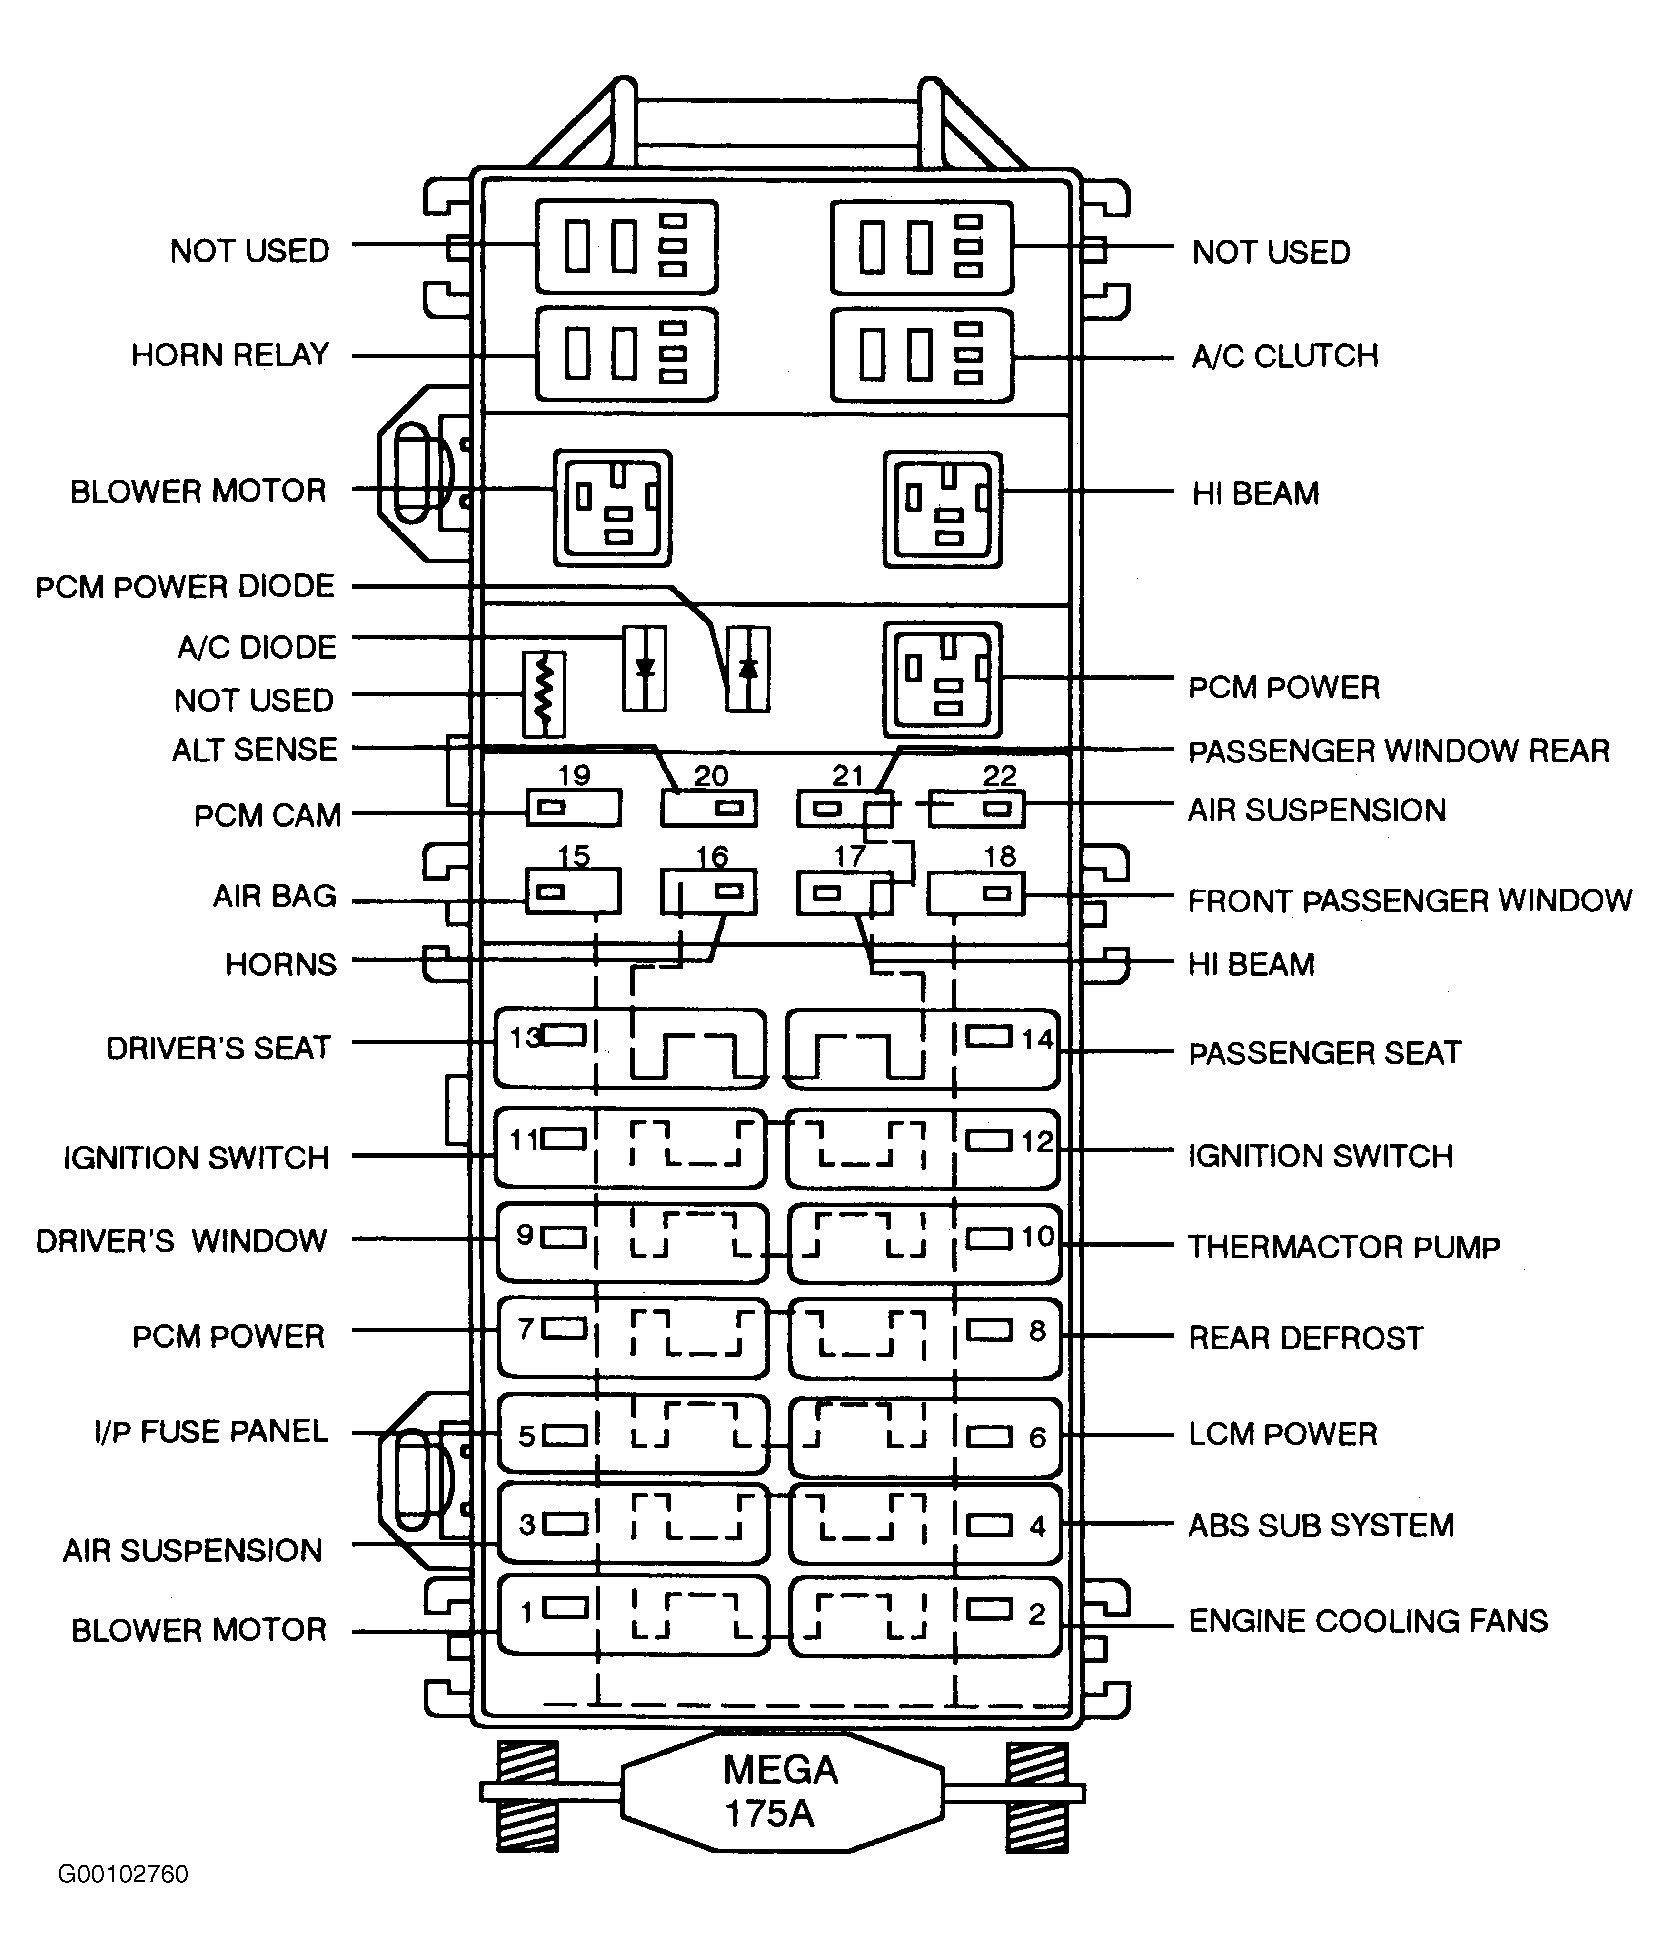 hight resolution of e46 320d fuse box diagram wiring library rh 10 dirtytalk camgirls de